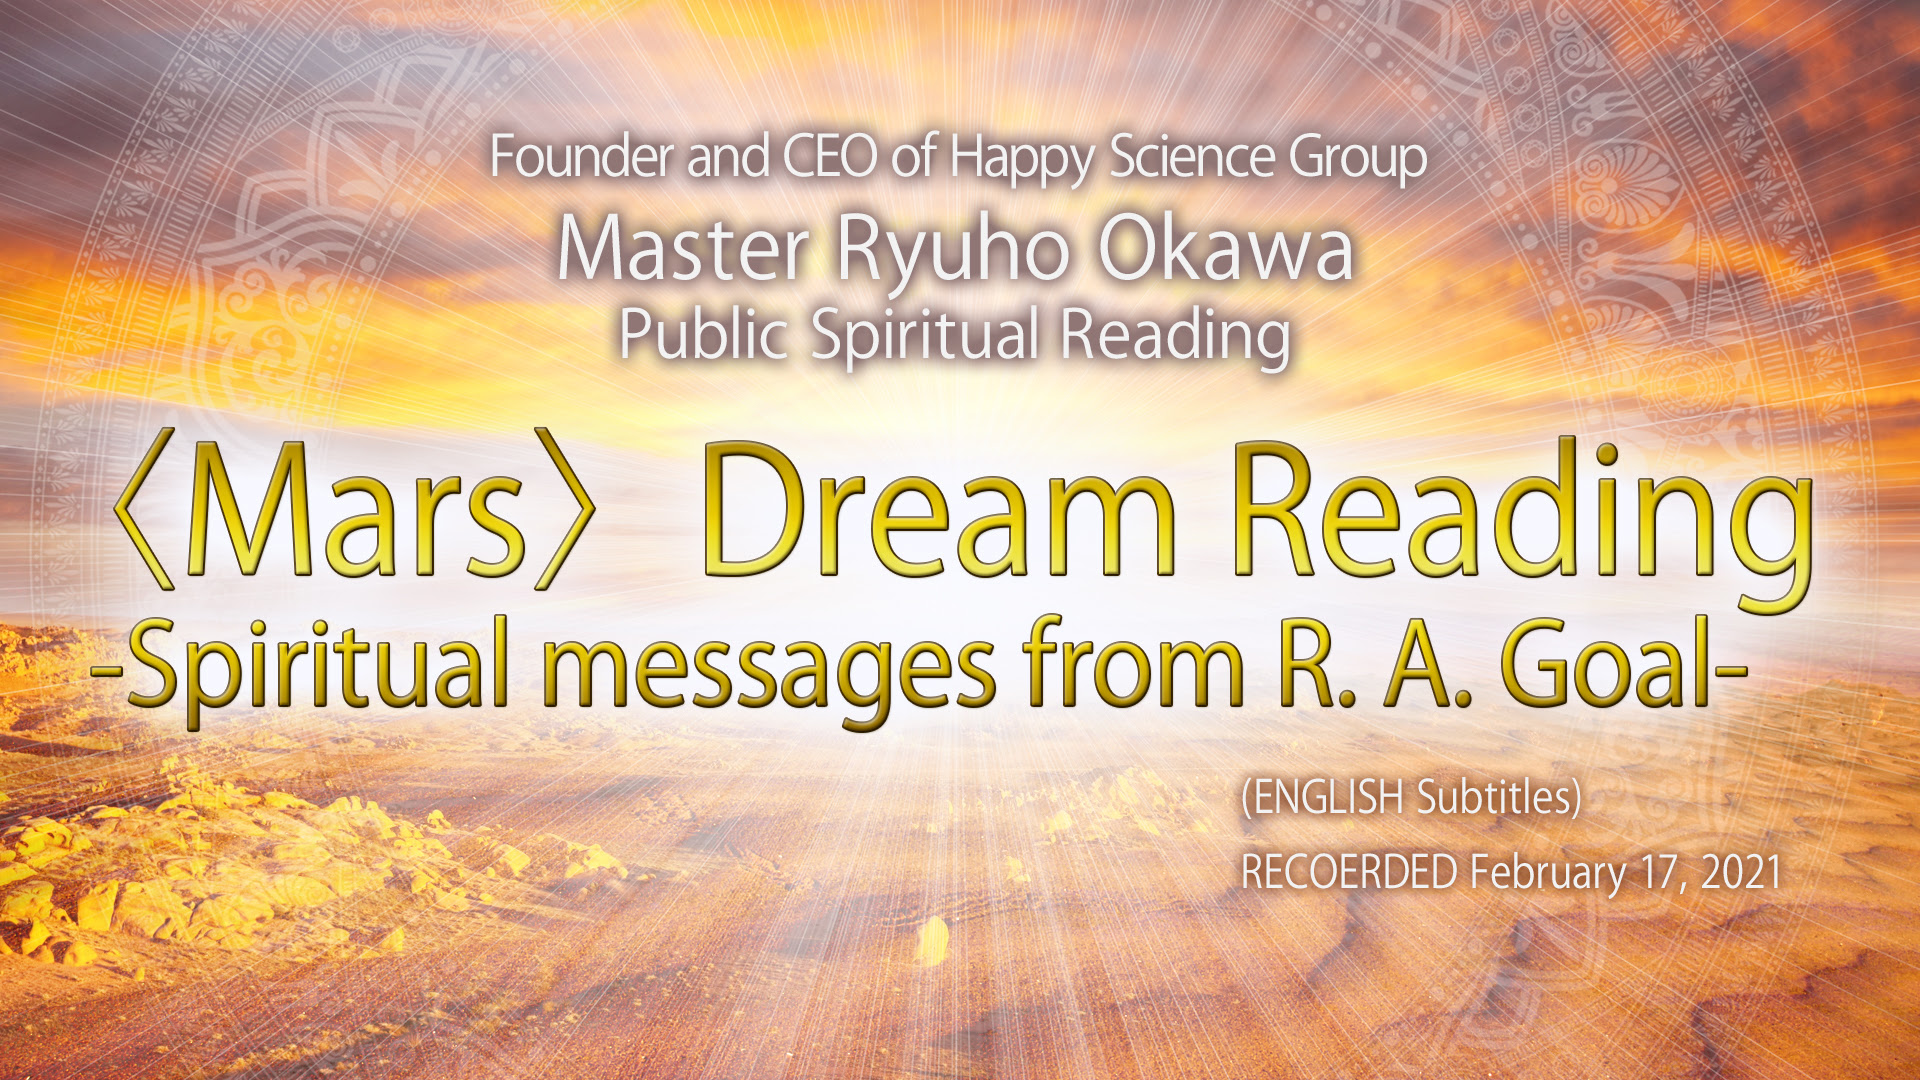 Dream Reading - Spiritual messages from R. A. Goal -